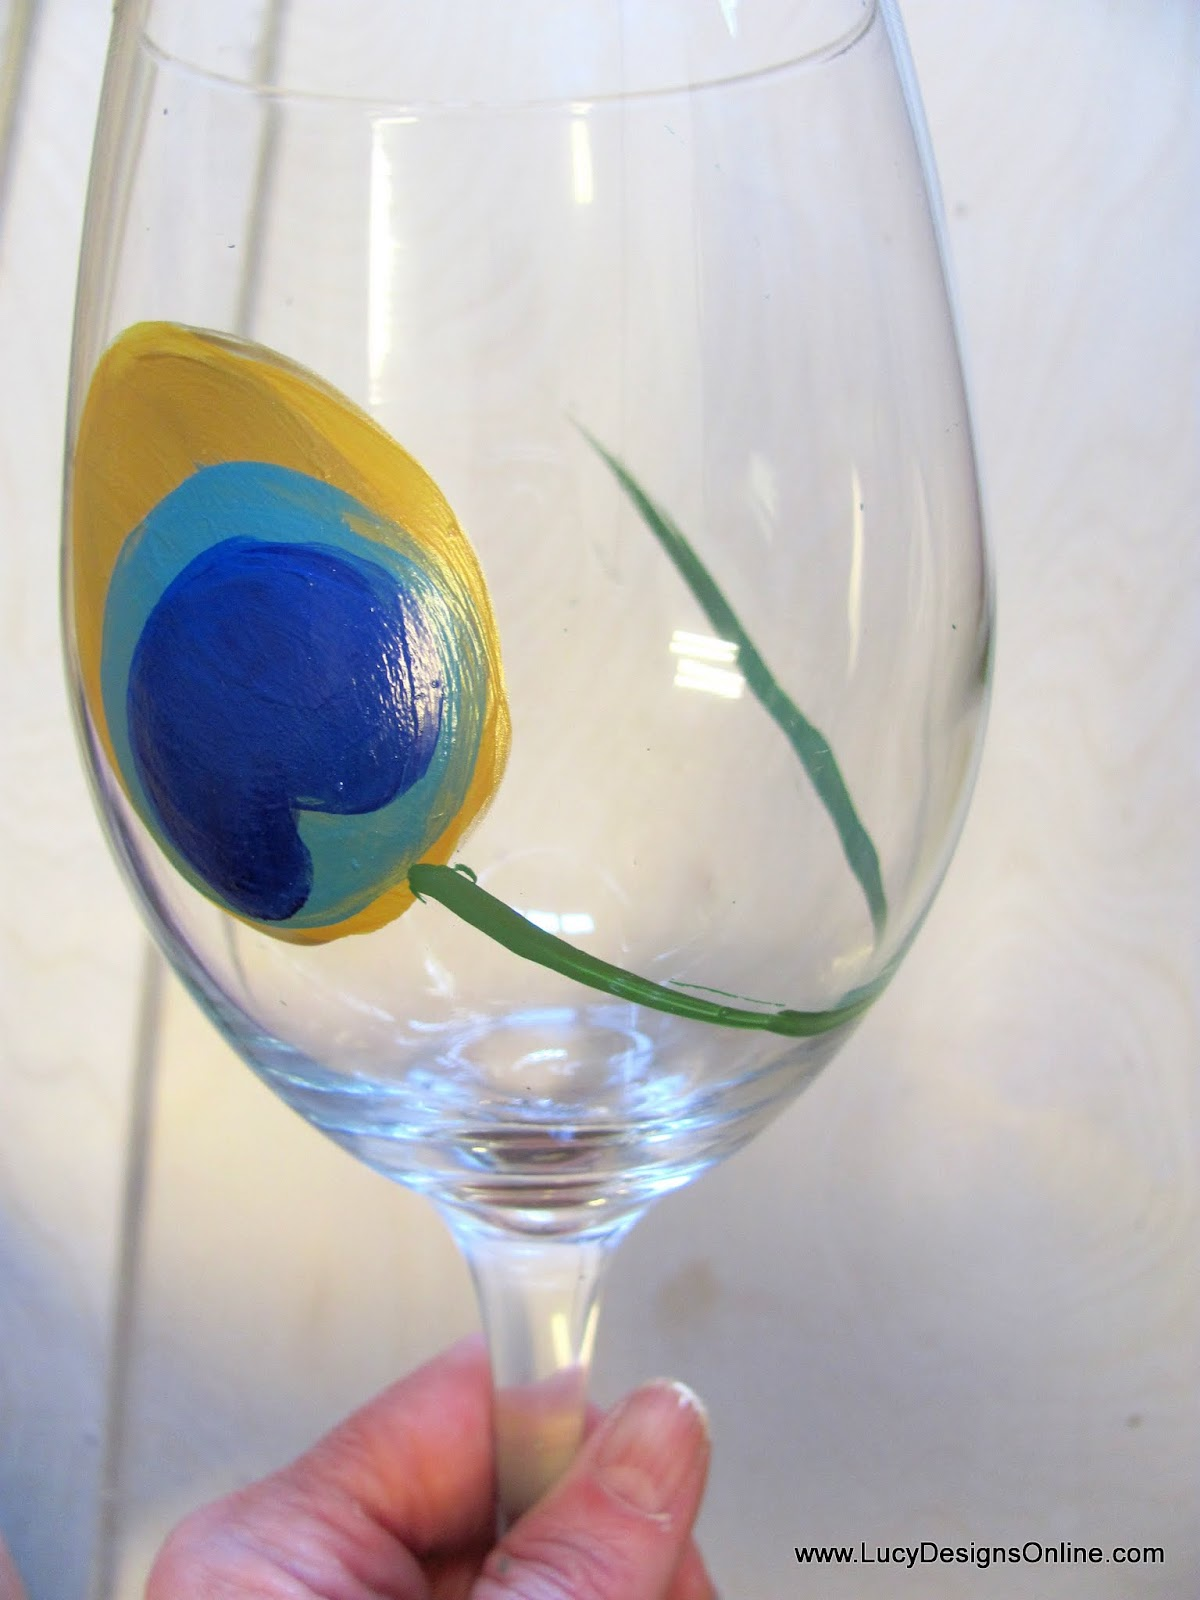 Diy hand painted wine glasses with peacock feather design hand painted peacock feather glass painting reviewsmspy